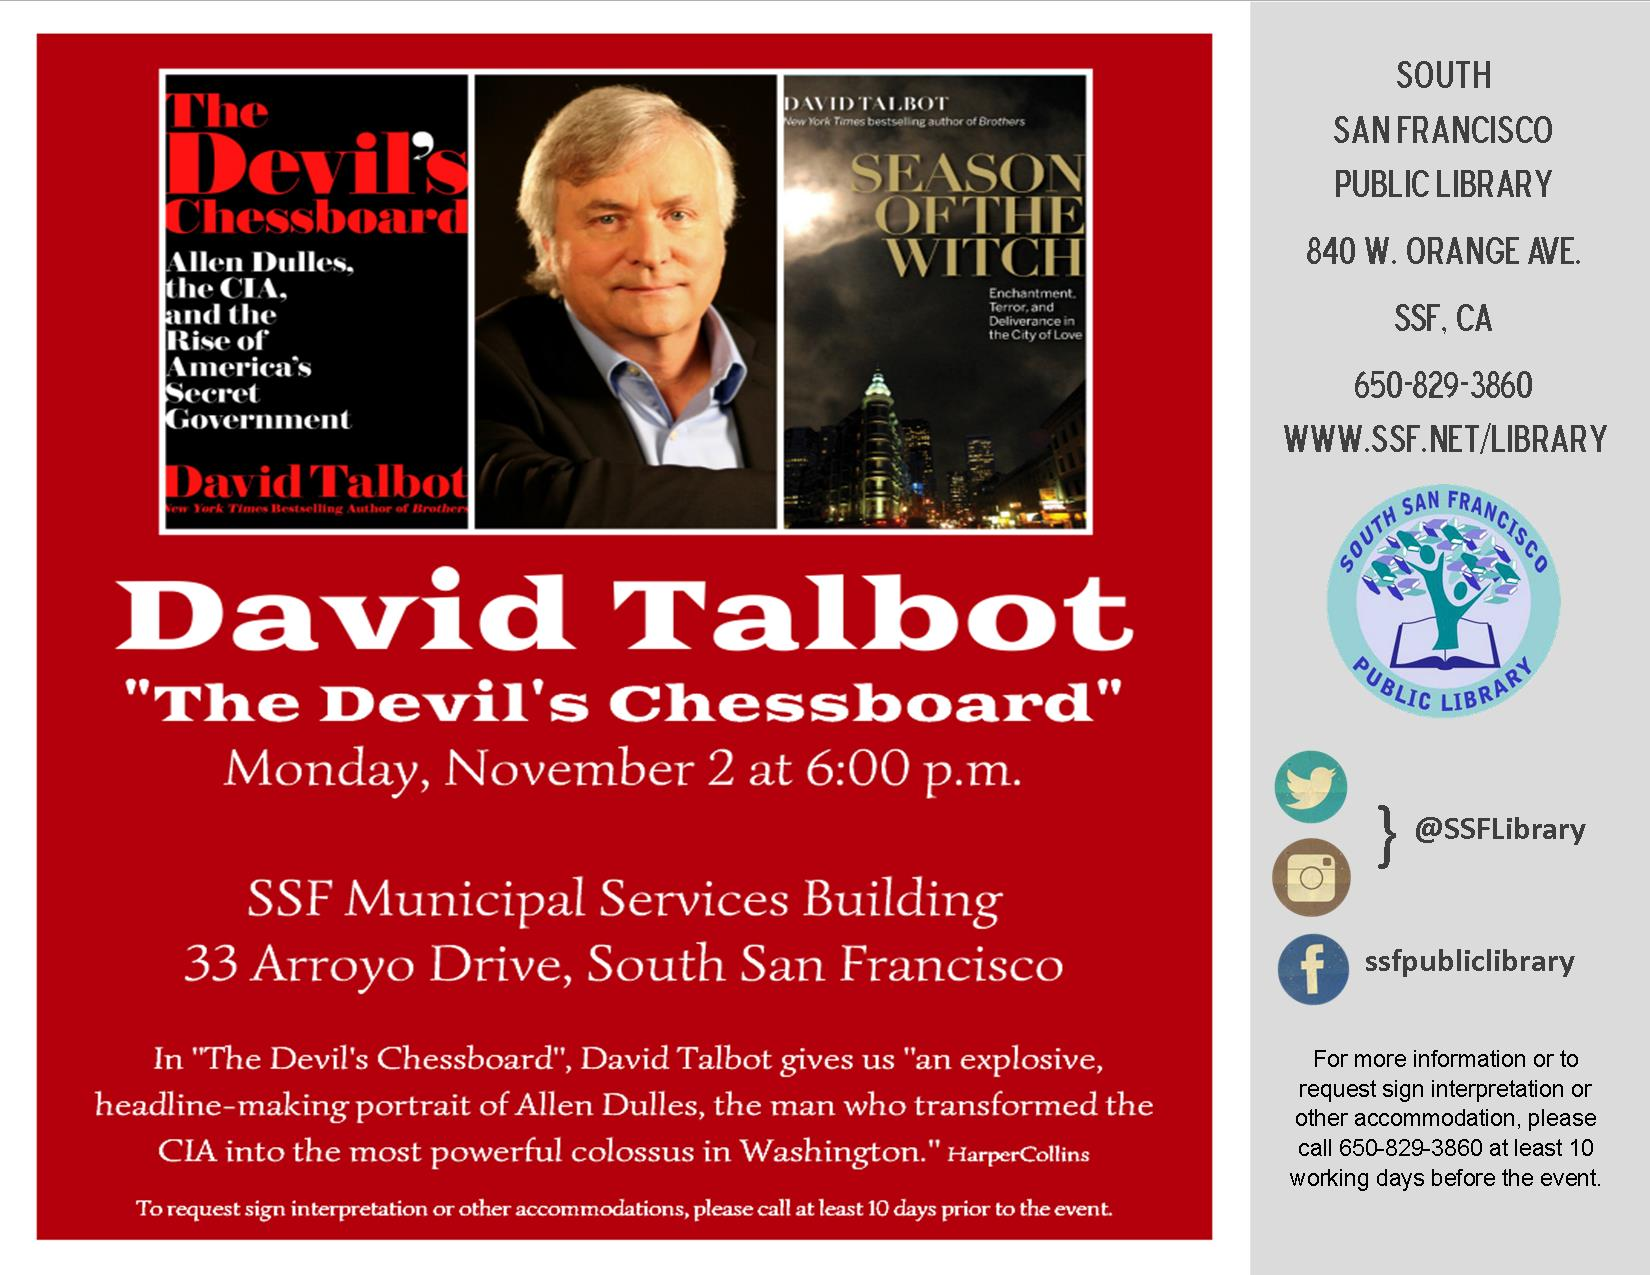 Author David Talbot Monday, Nov. 2nd at 6PM at the SSF Municipal Services Building